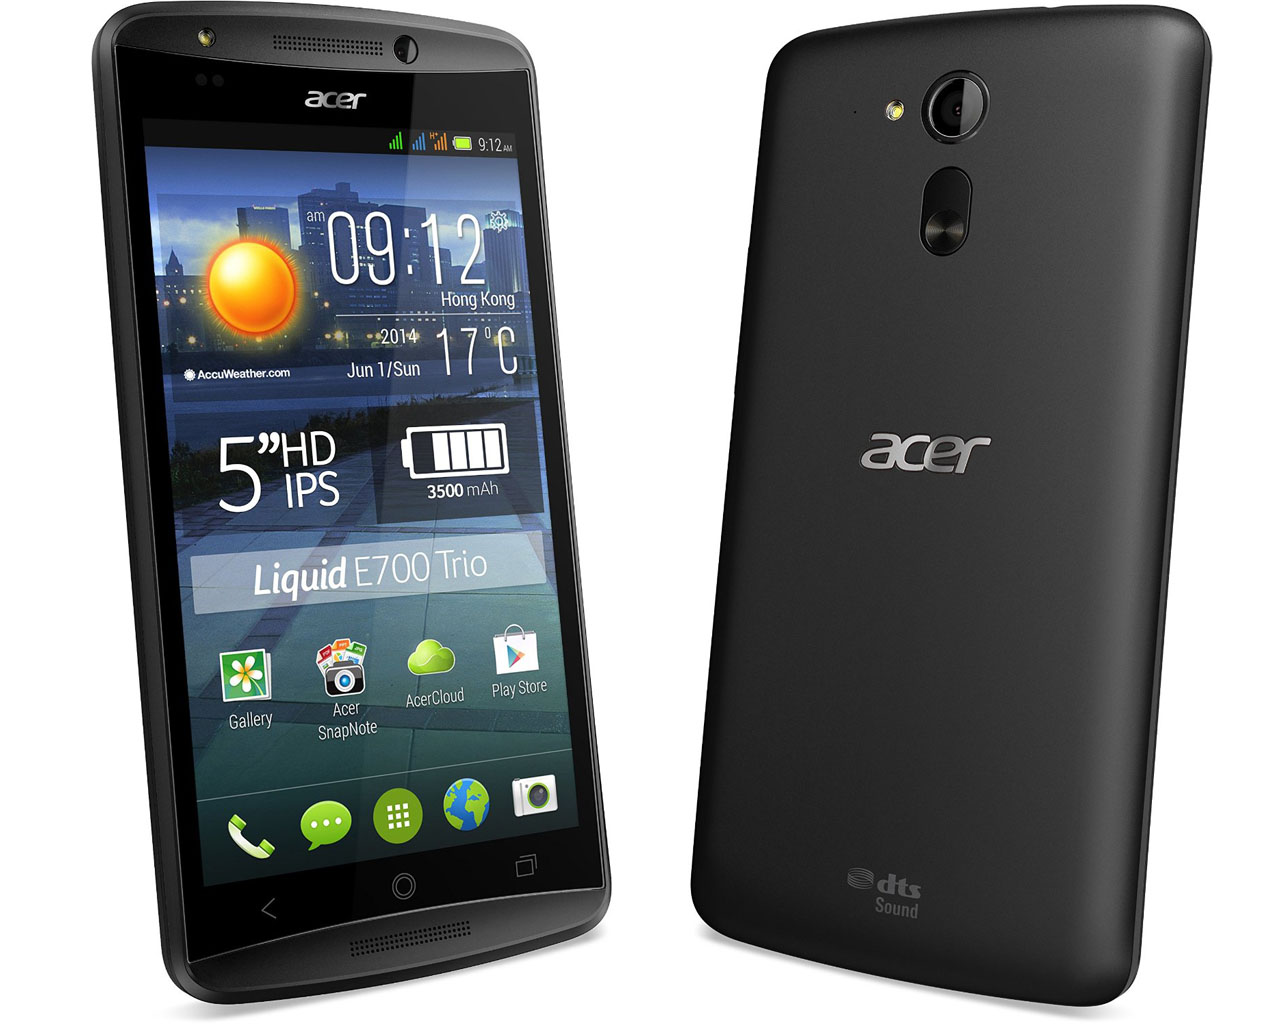 Acer Liquid E700 Trio Smartphone Review Notebookcheck